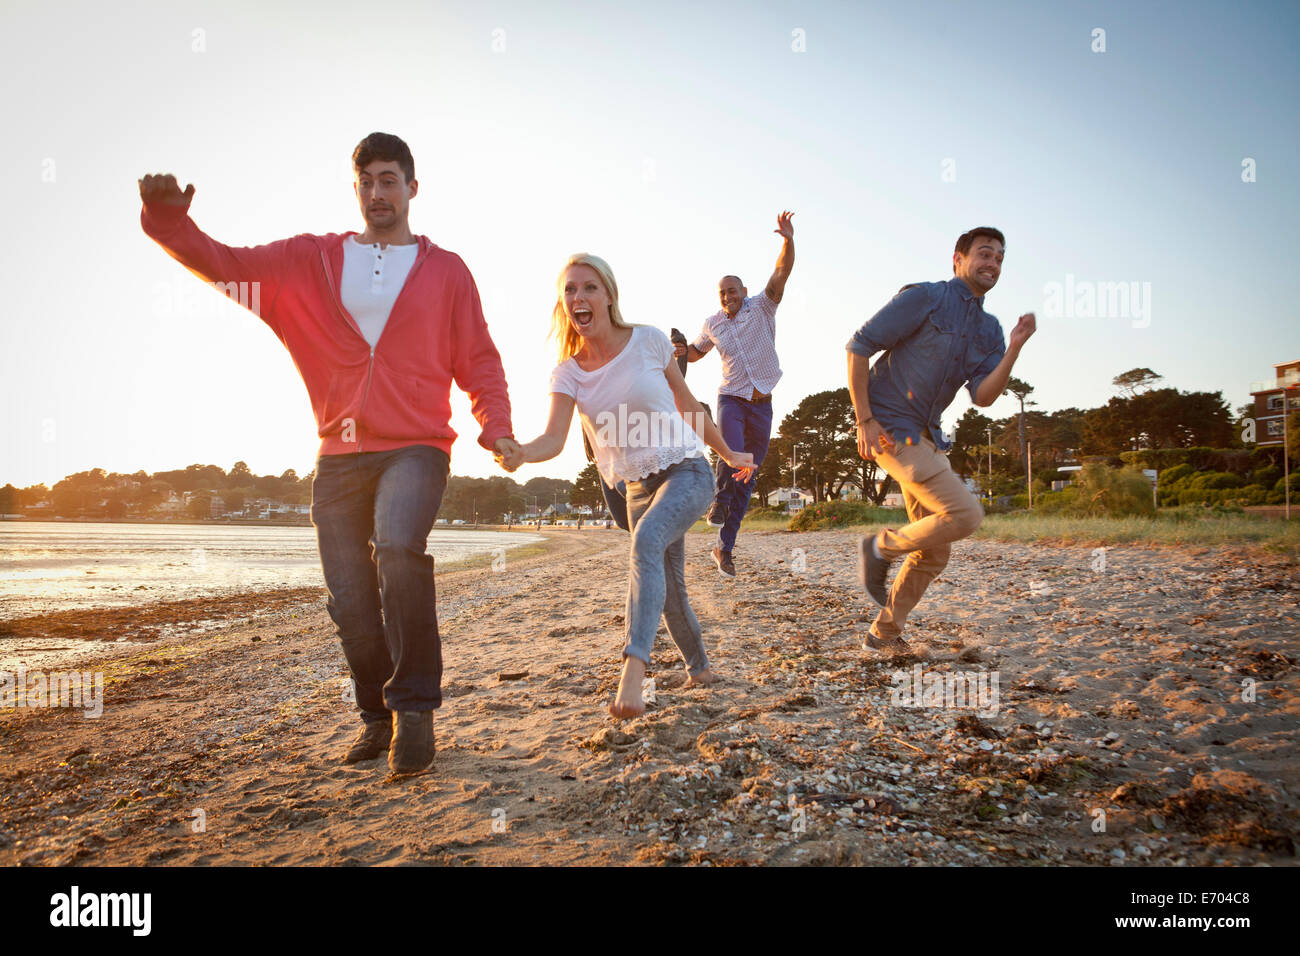 Group of friends having fun on beach - Stock Image